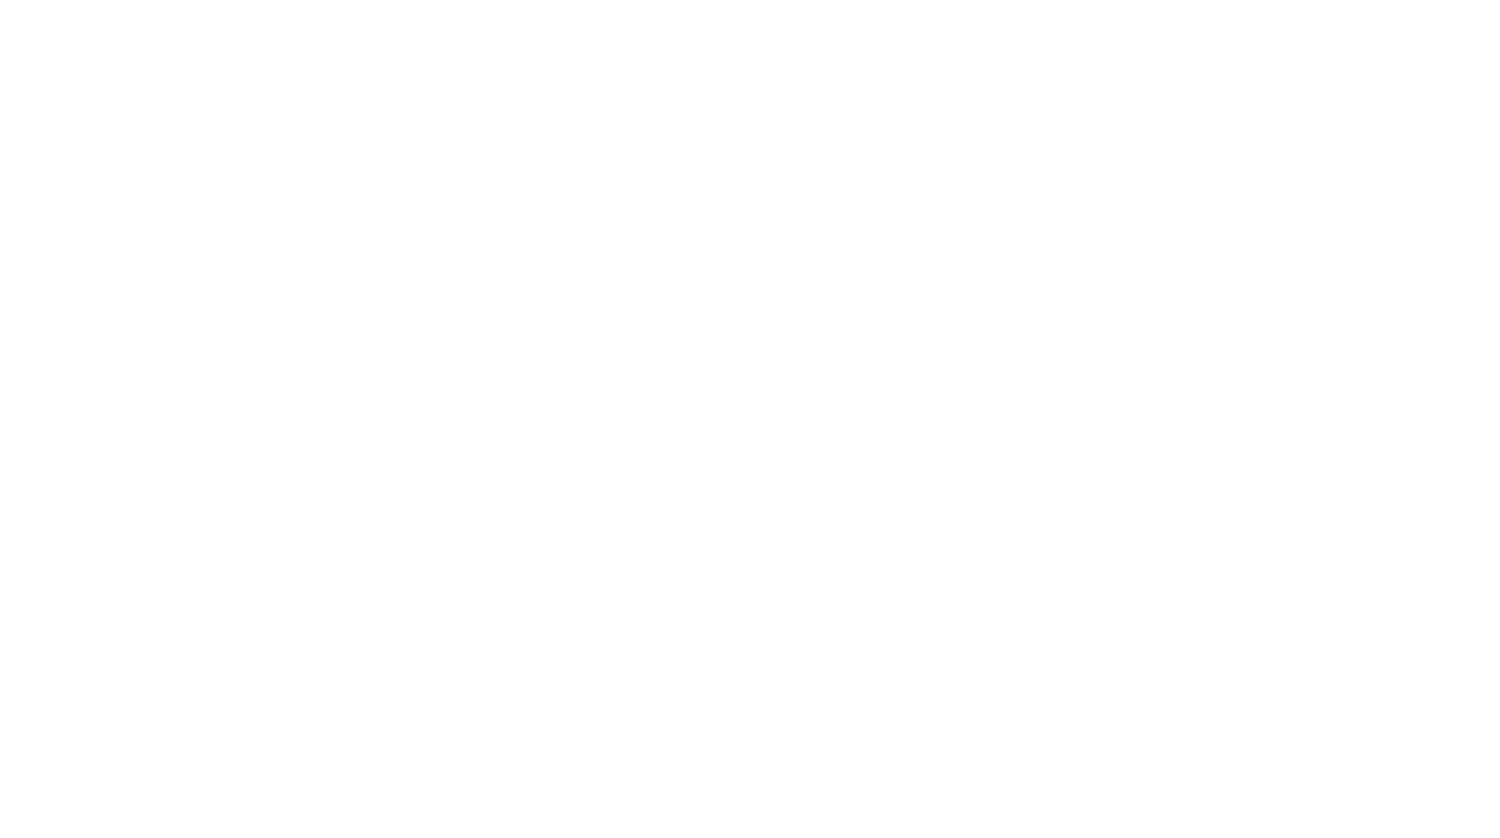 Justin Chase Mullins